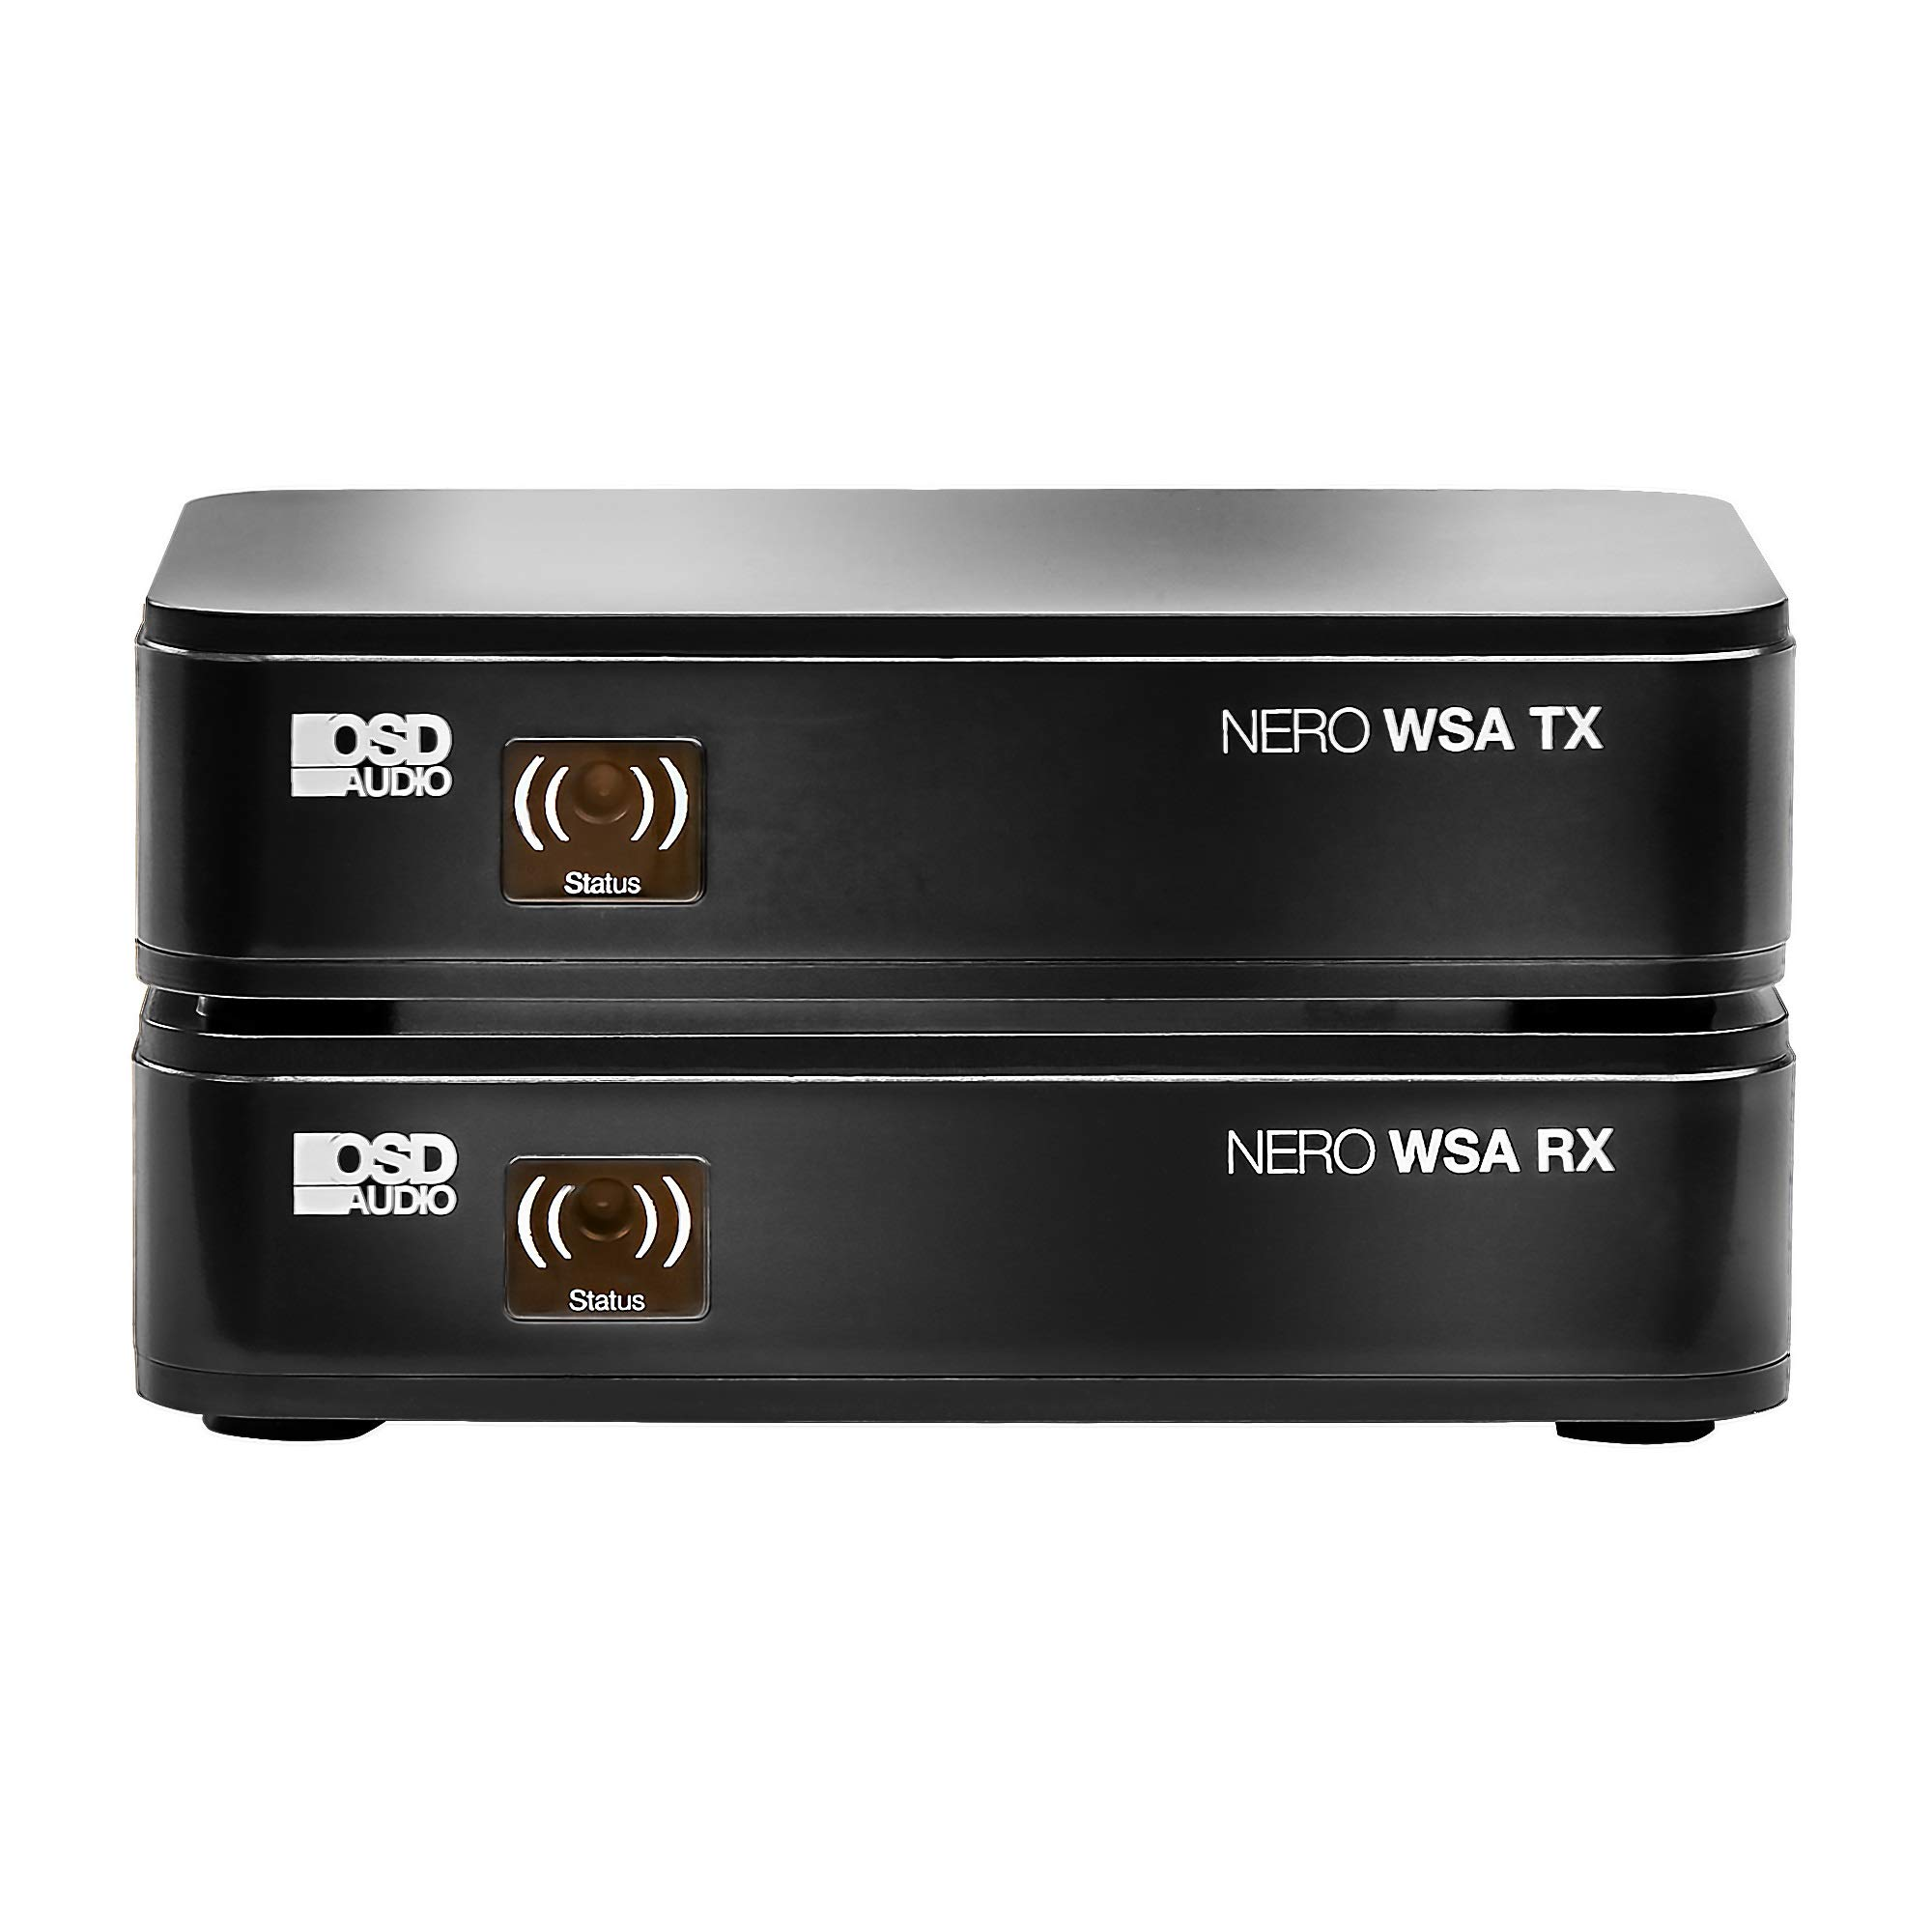 Nero-WSA Wireless Subwoofer Transmitter/Receiver Kit with 5.8 GHz Frequency Band and Dual Source Diversity Antennas - OSD Audio by OSD Audio